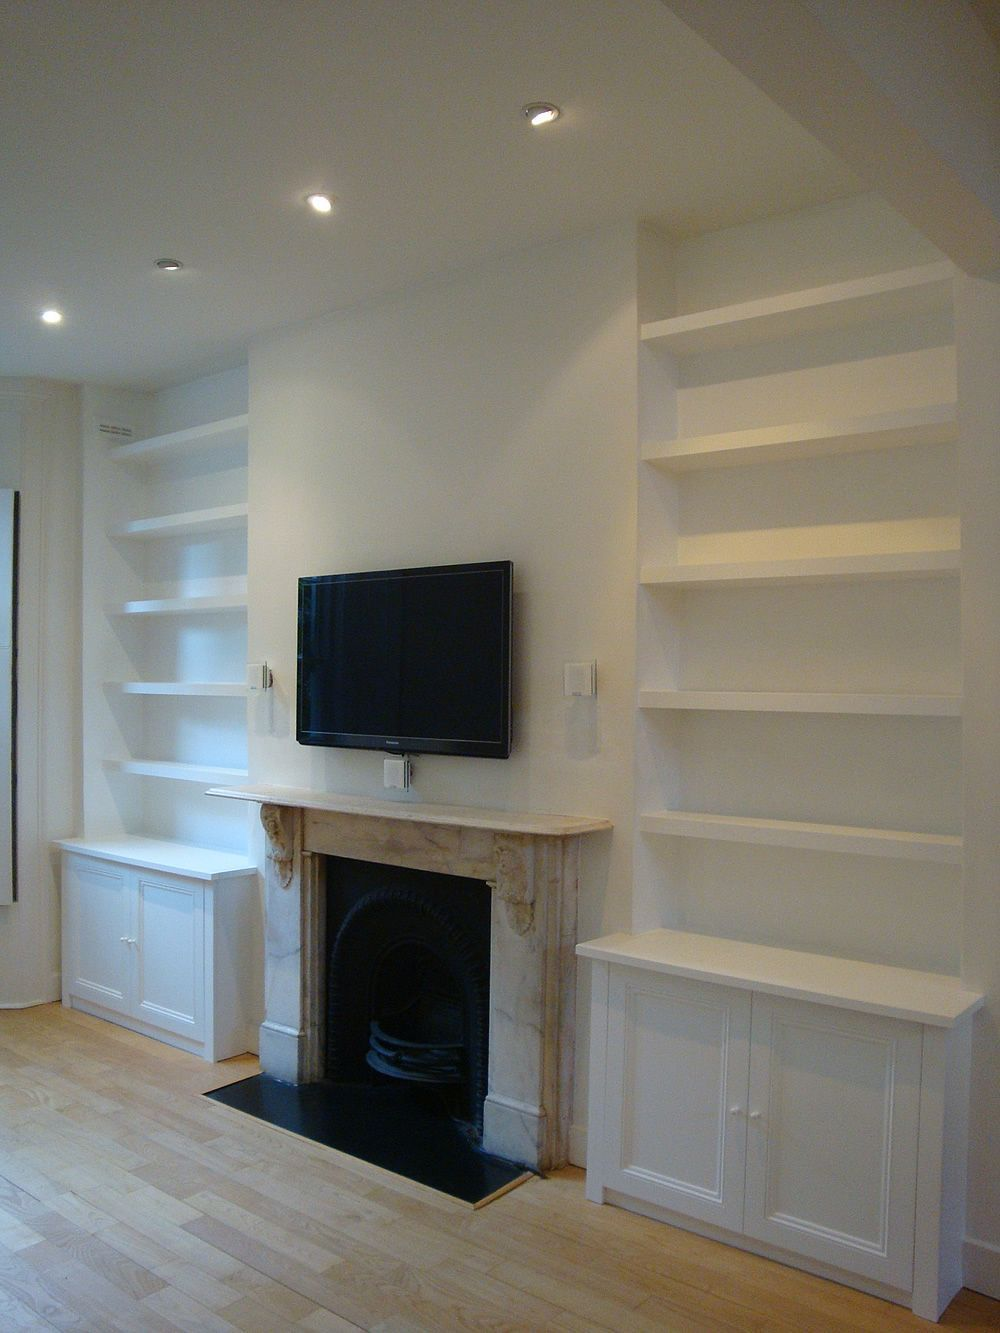 Fitted Alcove Cabinets And Chunky Floating Shelves By London Carpenter Alcove Cabinets Floating Shelves Living Room Living Room Shelves